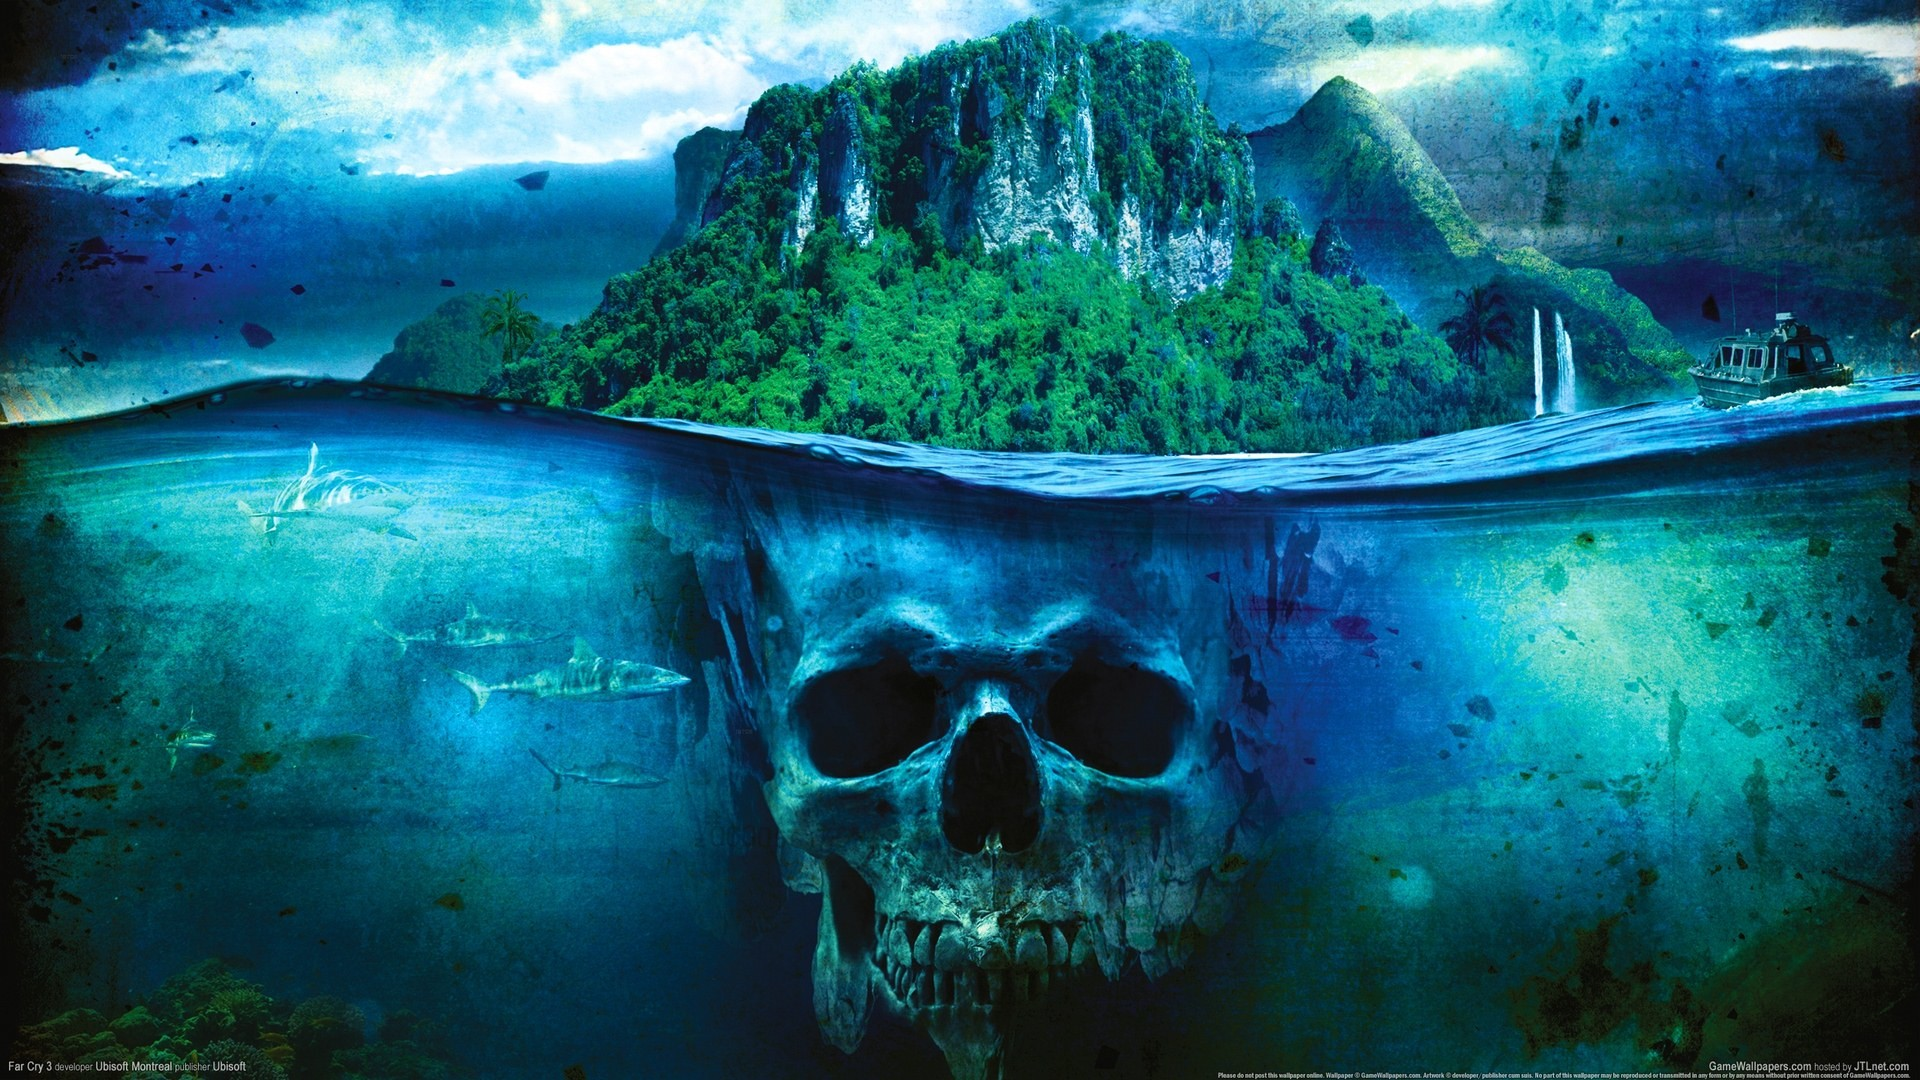 1920x1080 To Download or Set this Free Skull Island Wallpaper as the Desktop  Background Image for your